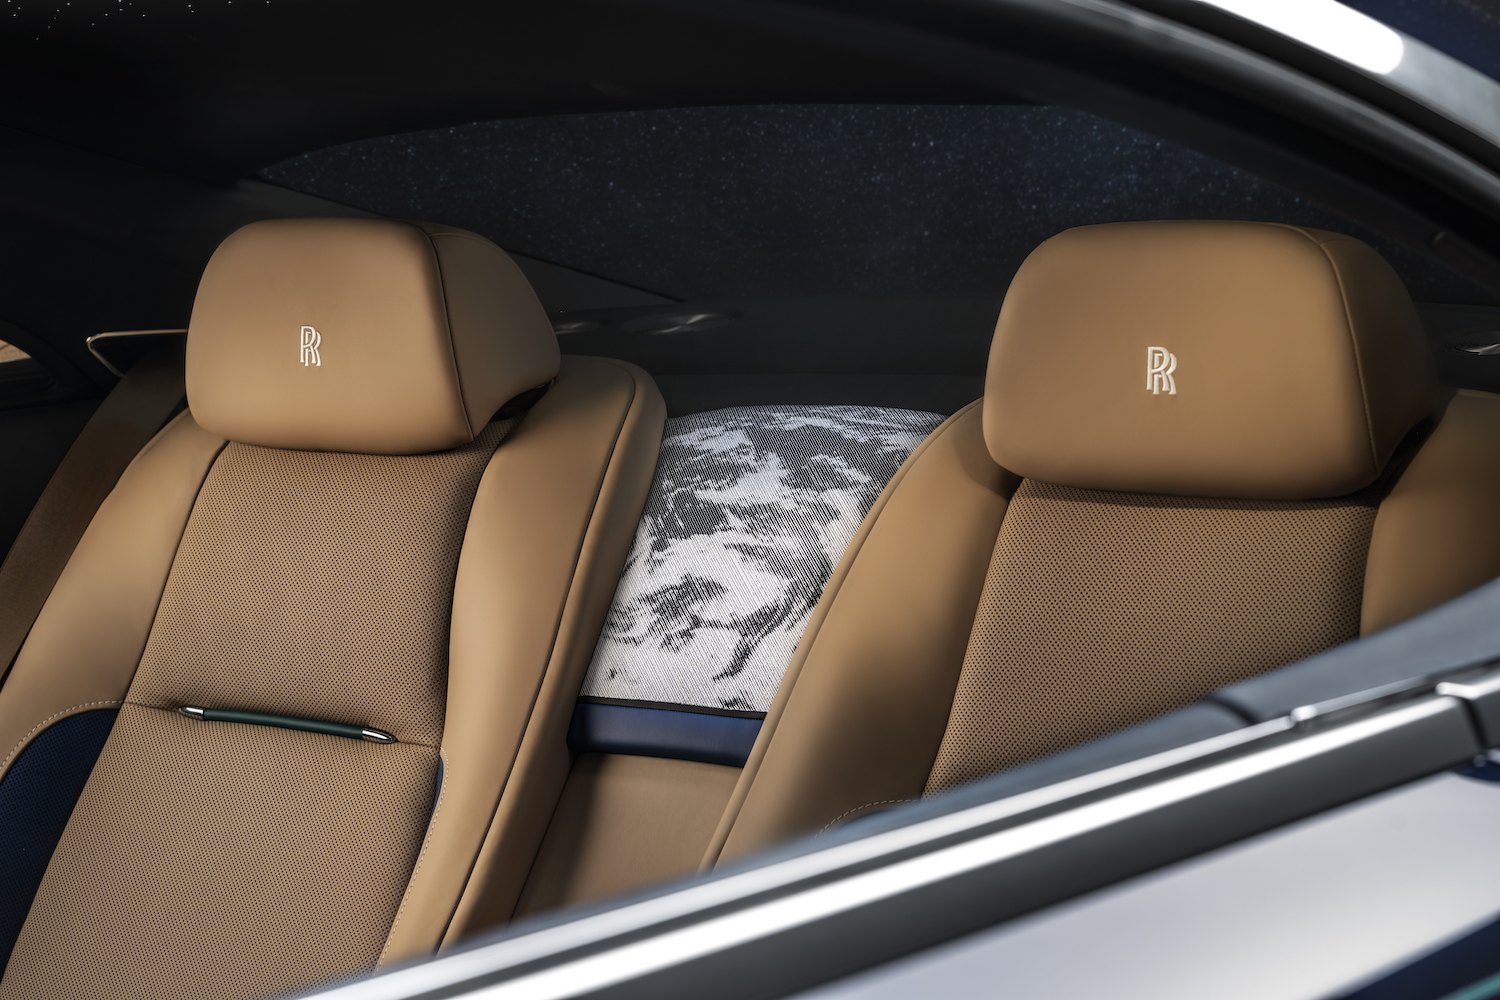 Bespoke Rolls-Royce Wraith - Inspired By Earth Touches Down In Abu Dhabi